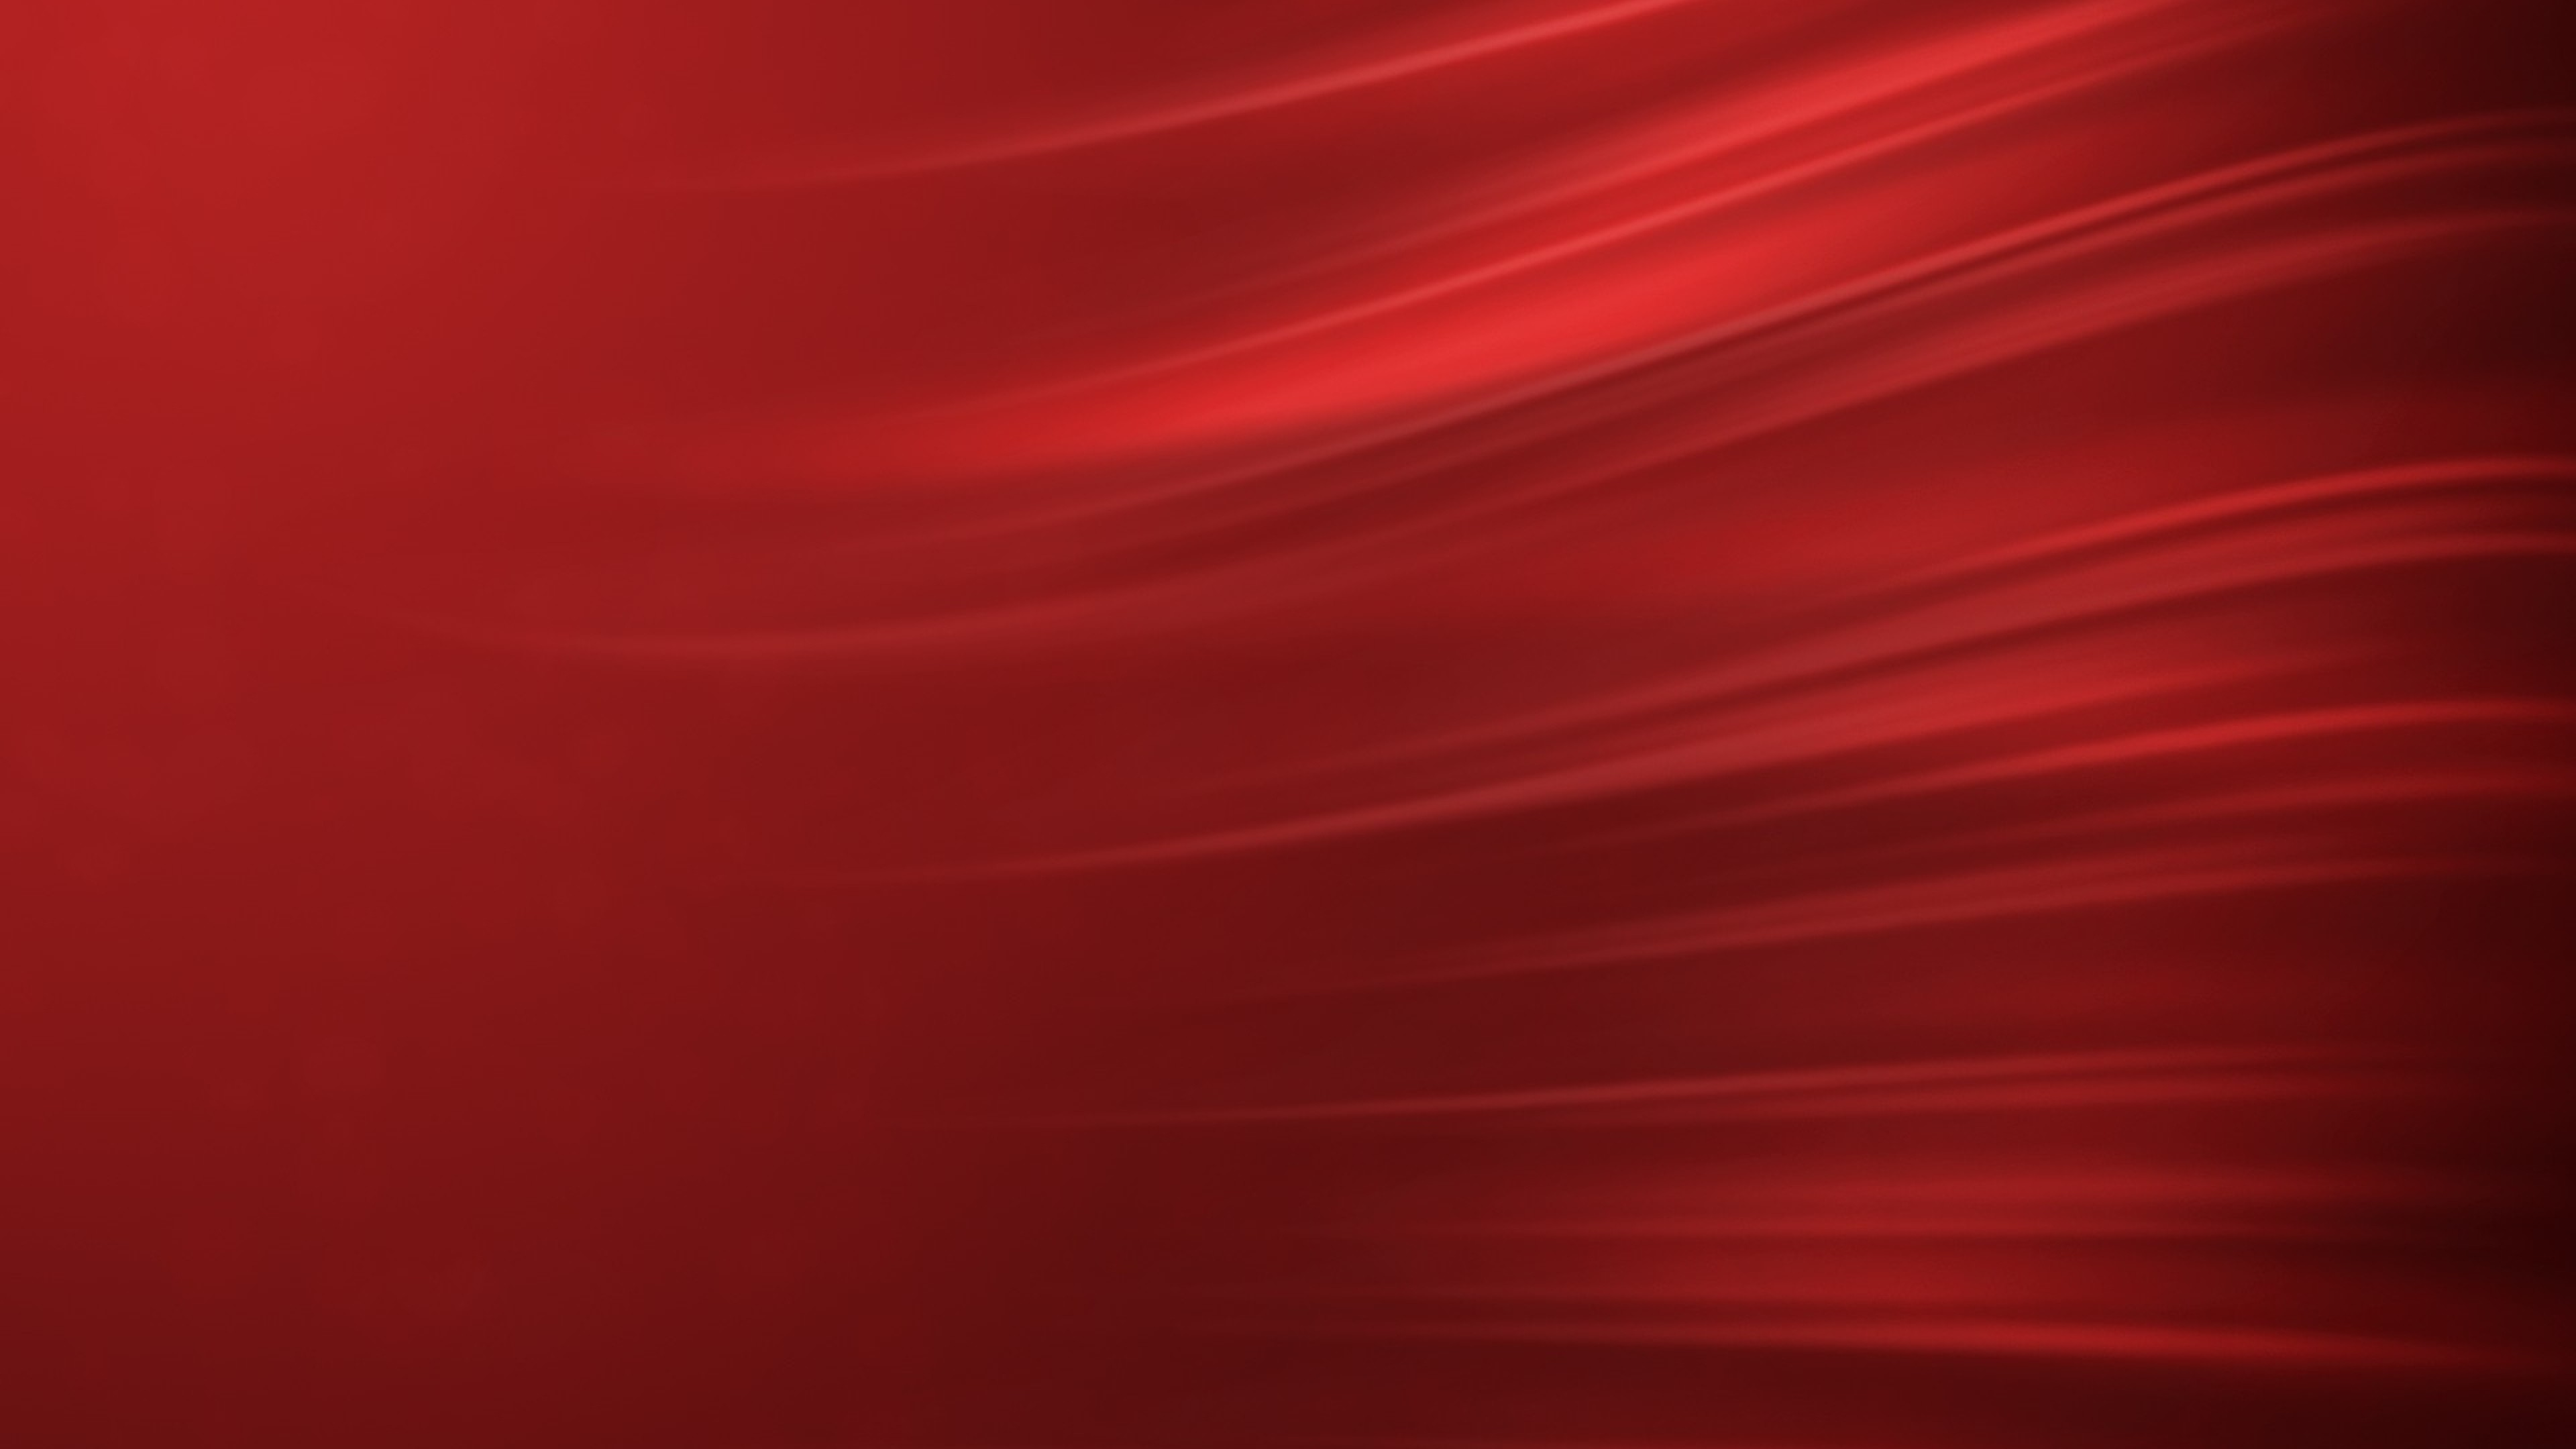 Wallpaper line, wavy, surface, red